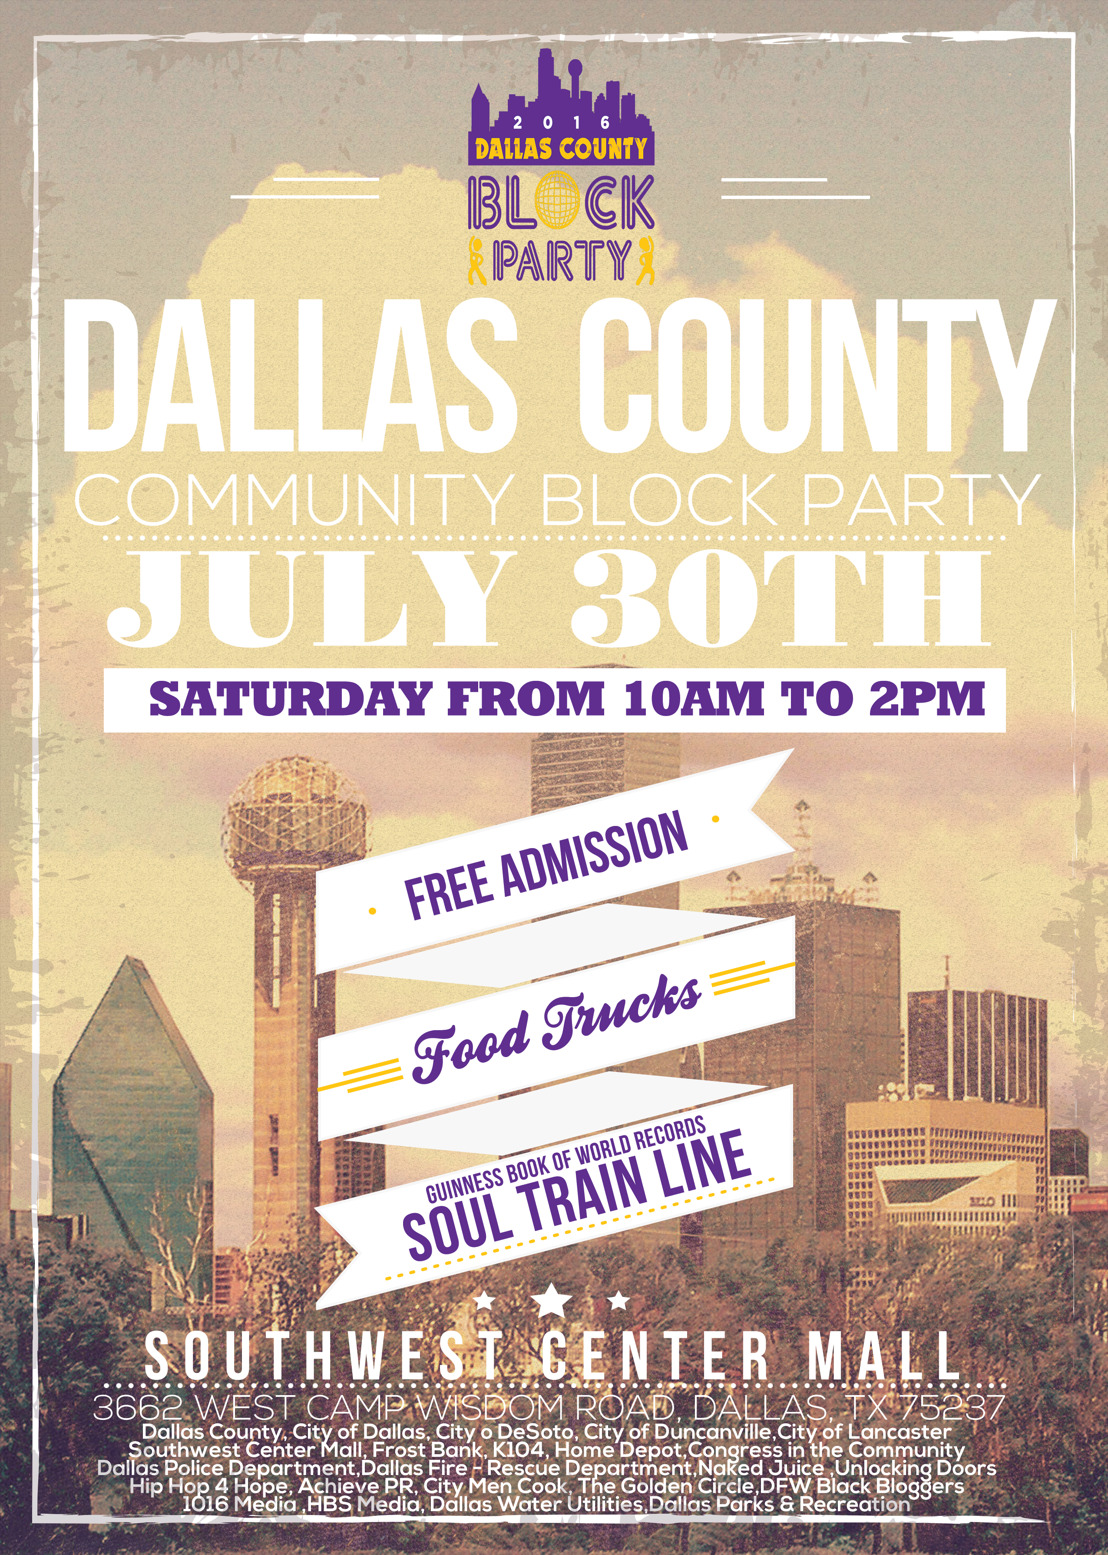 Dallas County Community Block Party and Record Breaking Soul Train Line